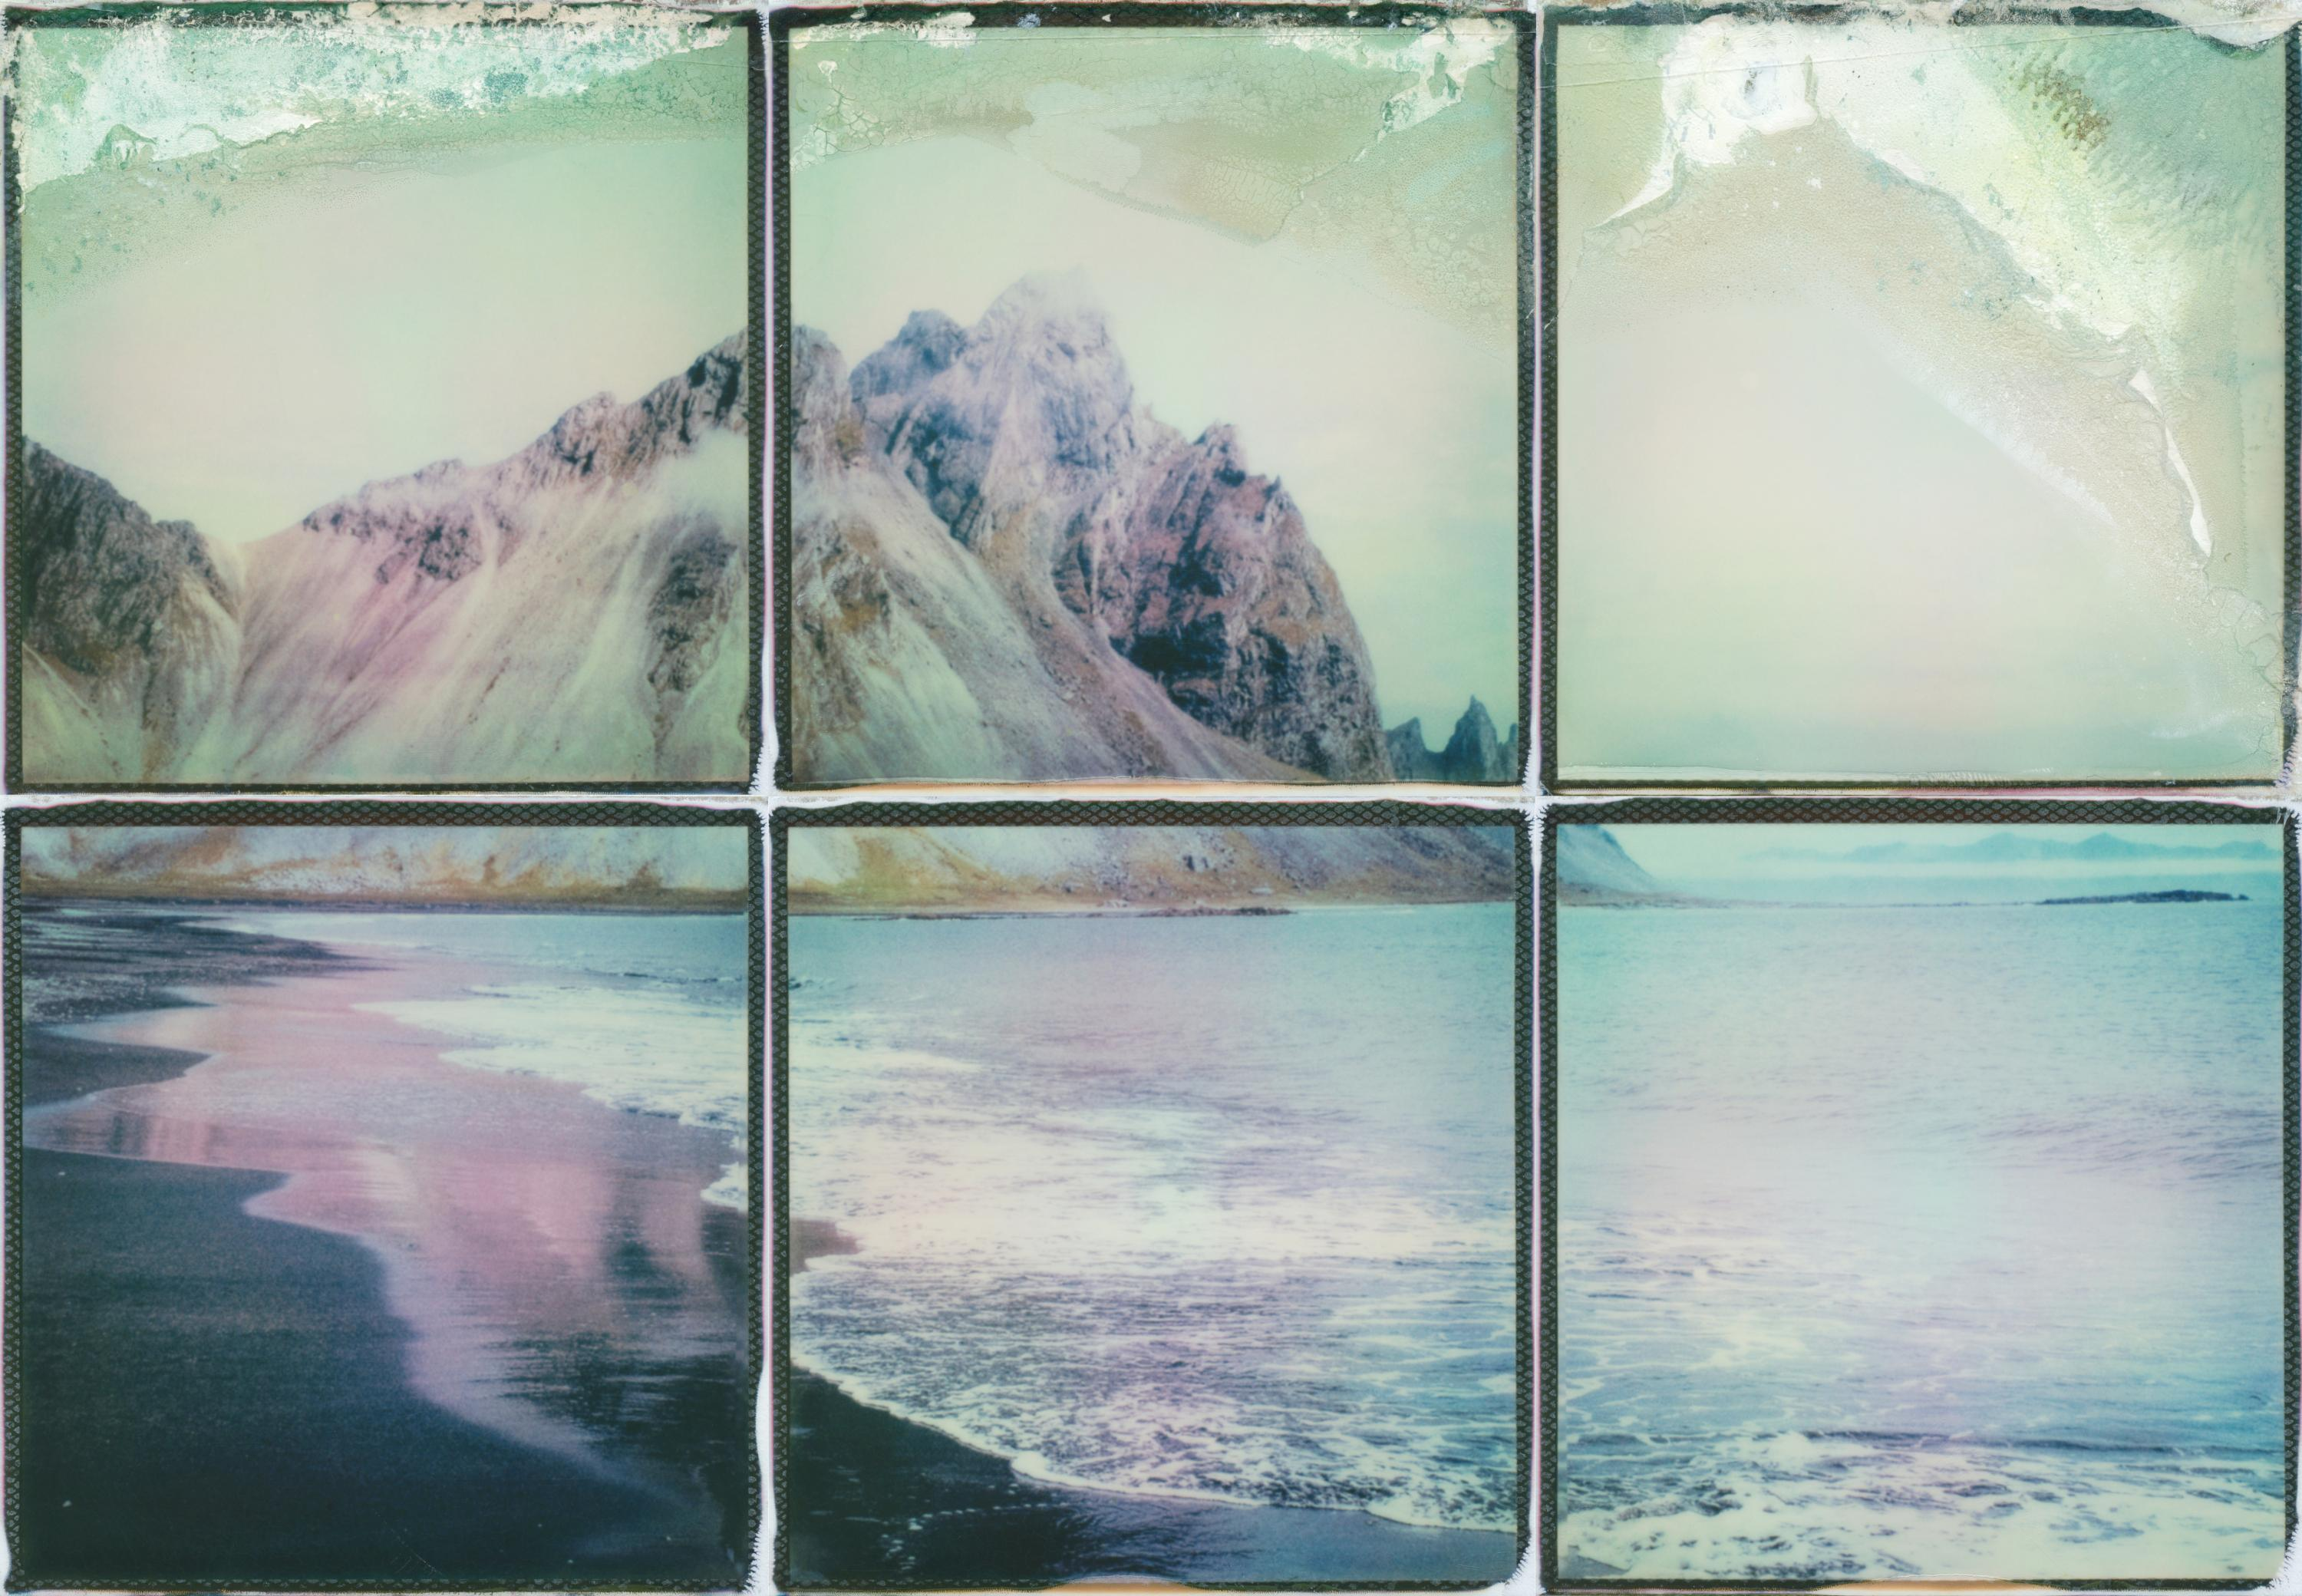 Home By The Sea - Contemporary, Polaroid, 21st Century, Landscape